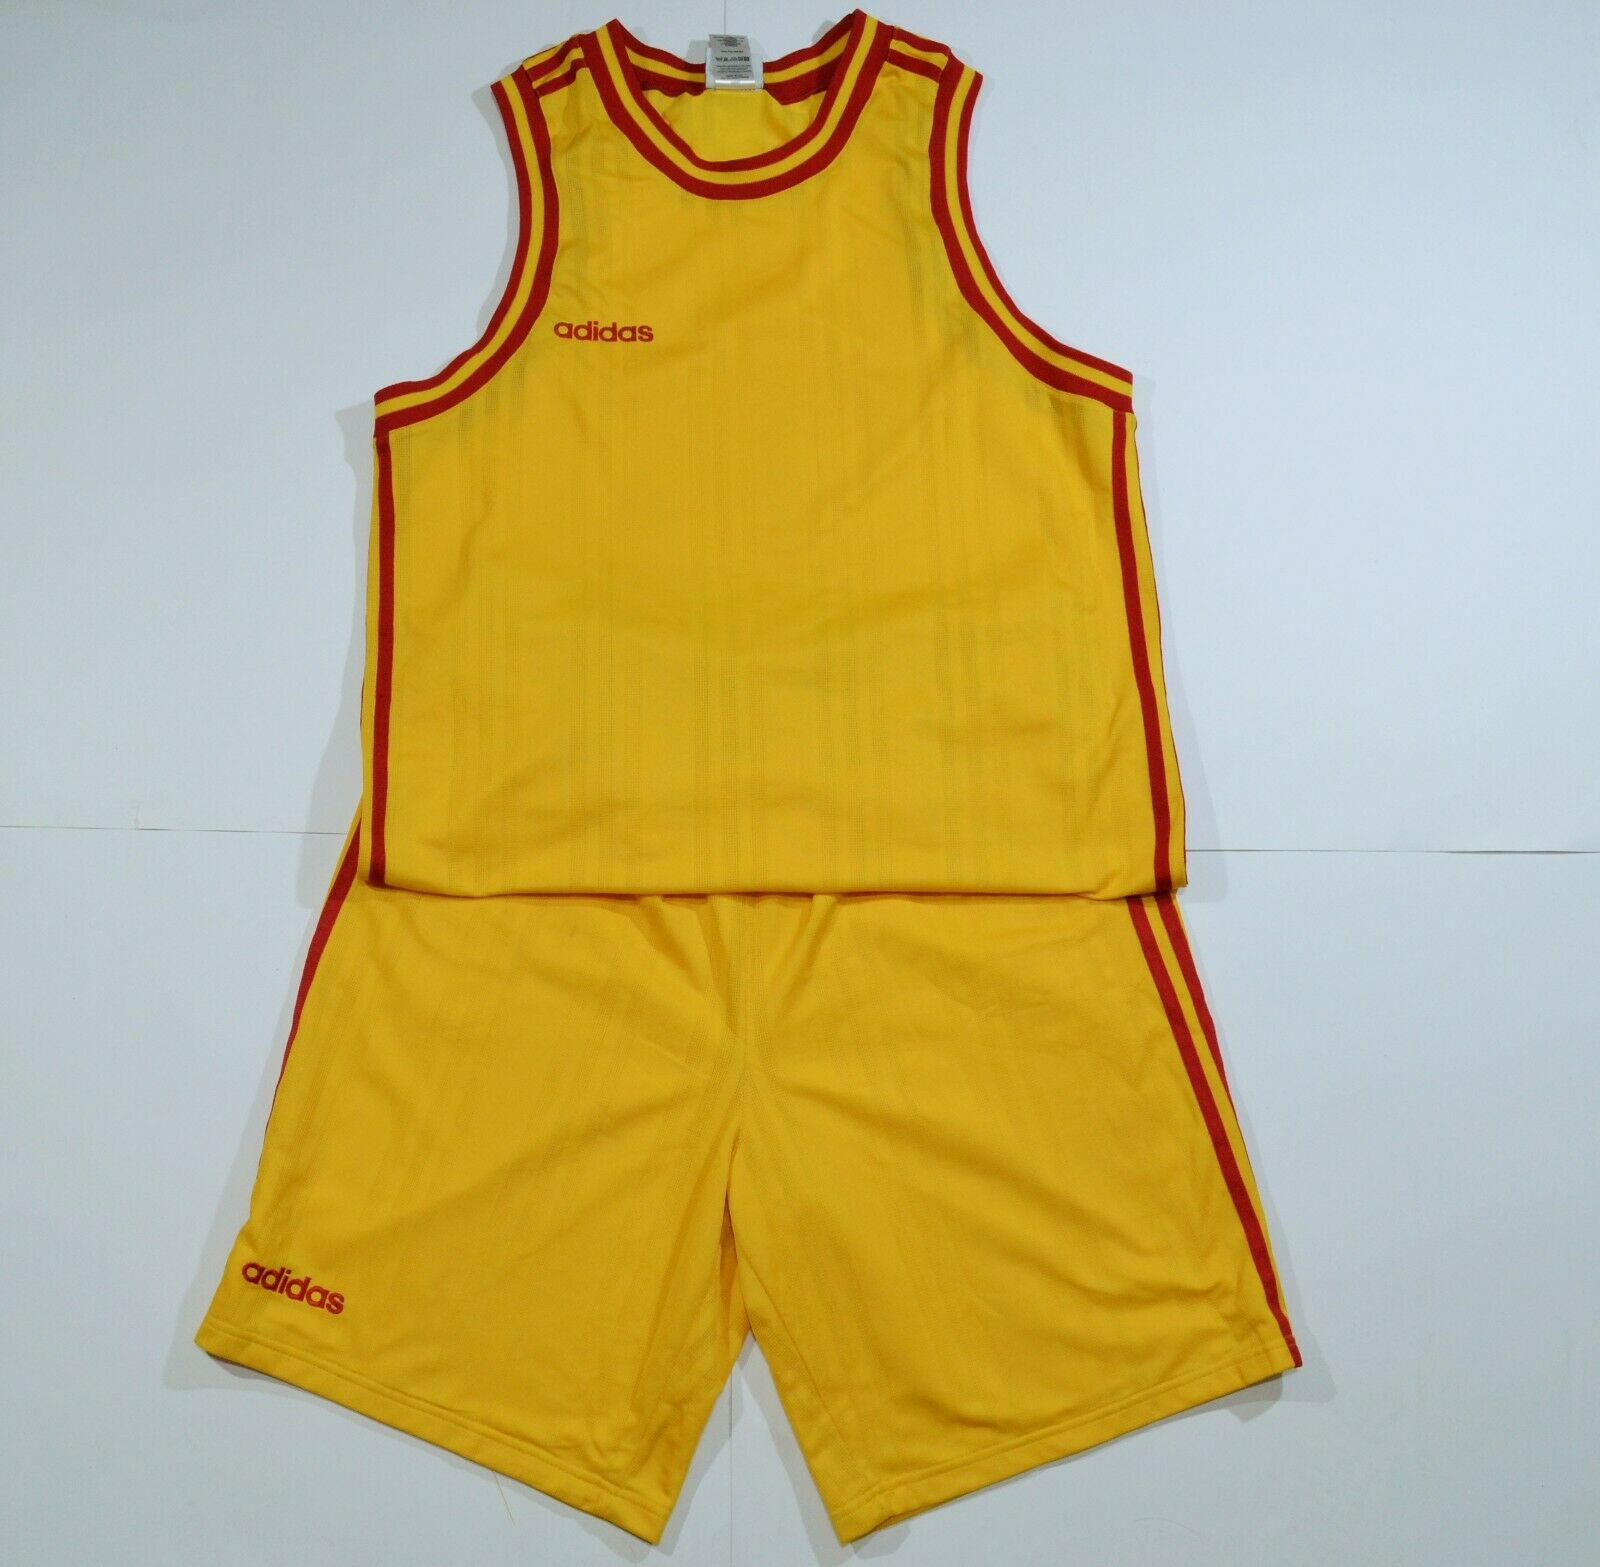 Adidas vintage basketball uniform jersey and shorts made in UK